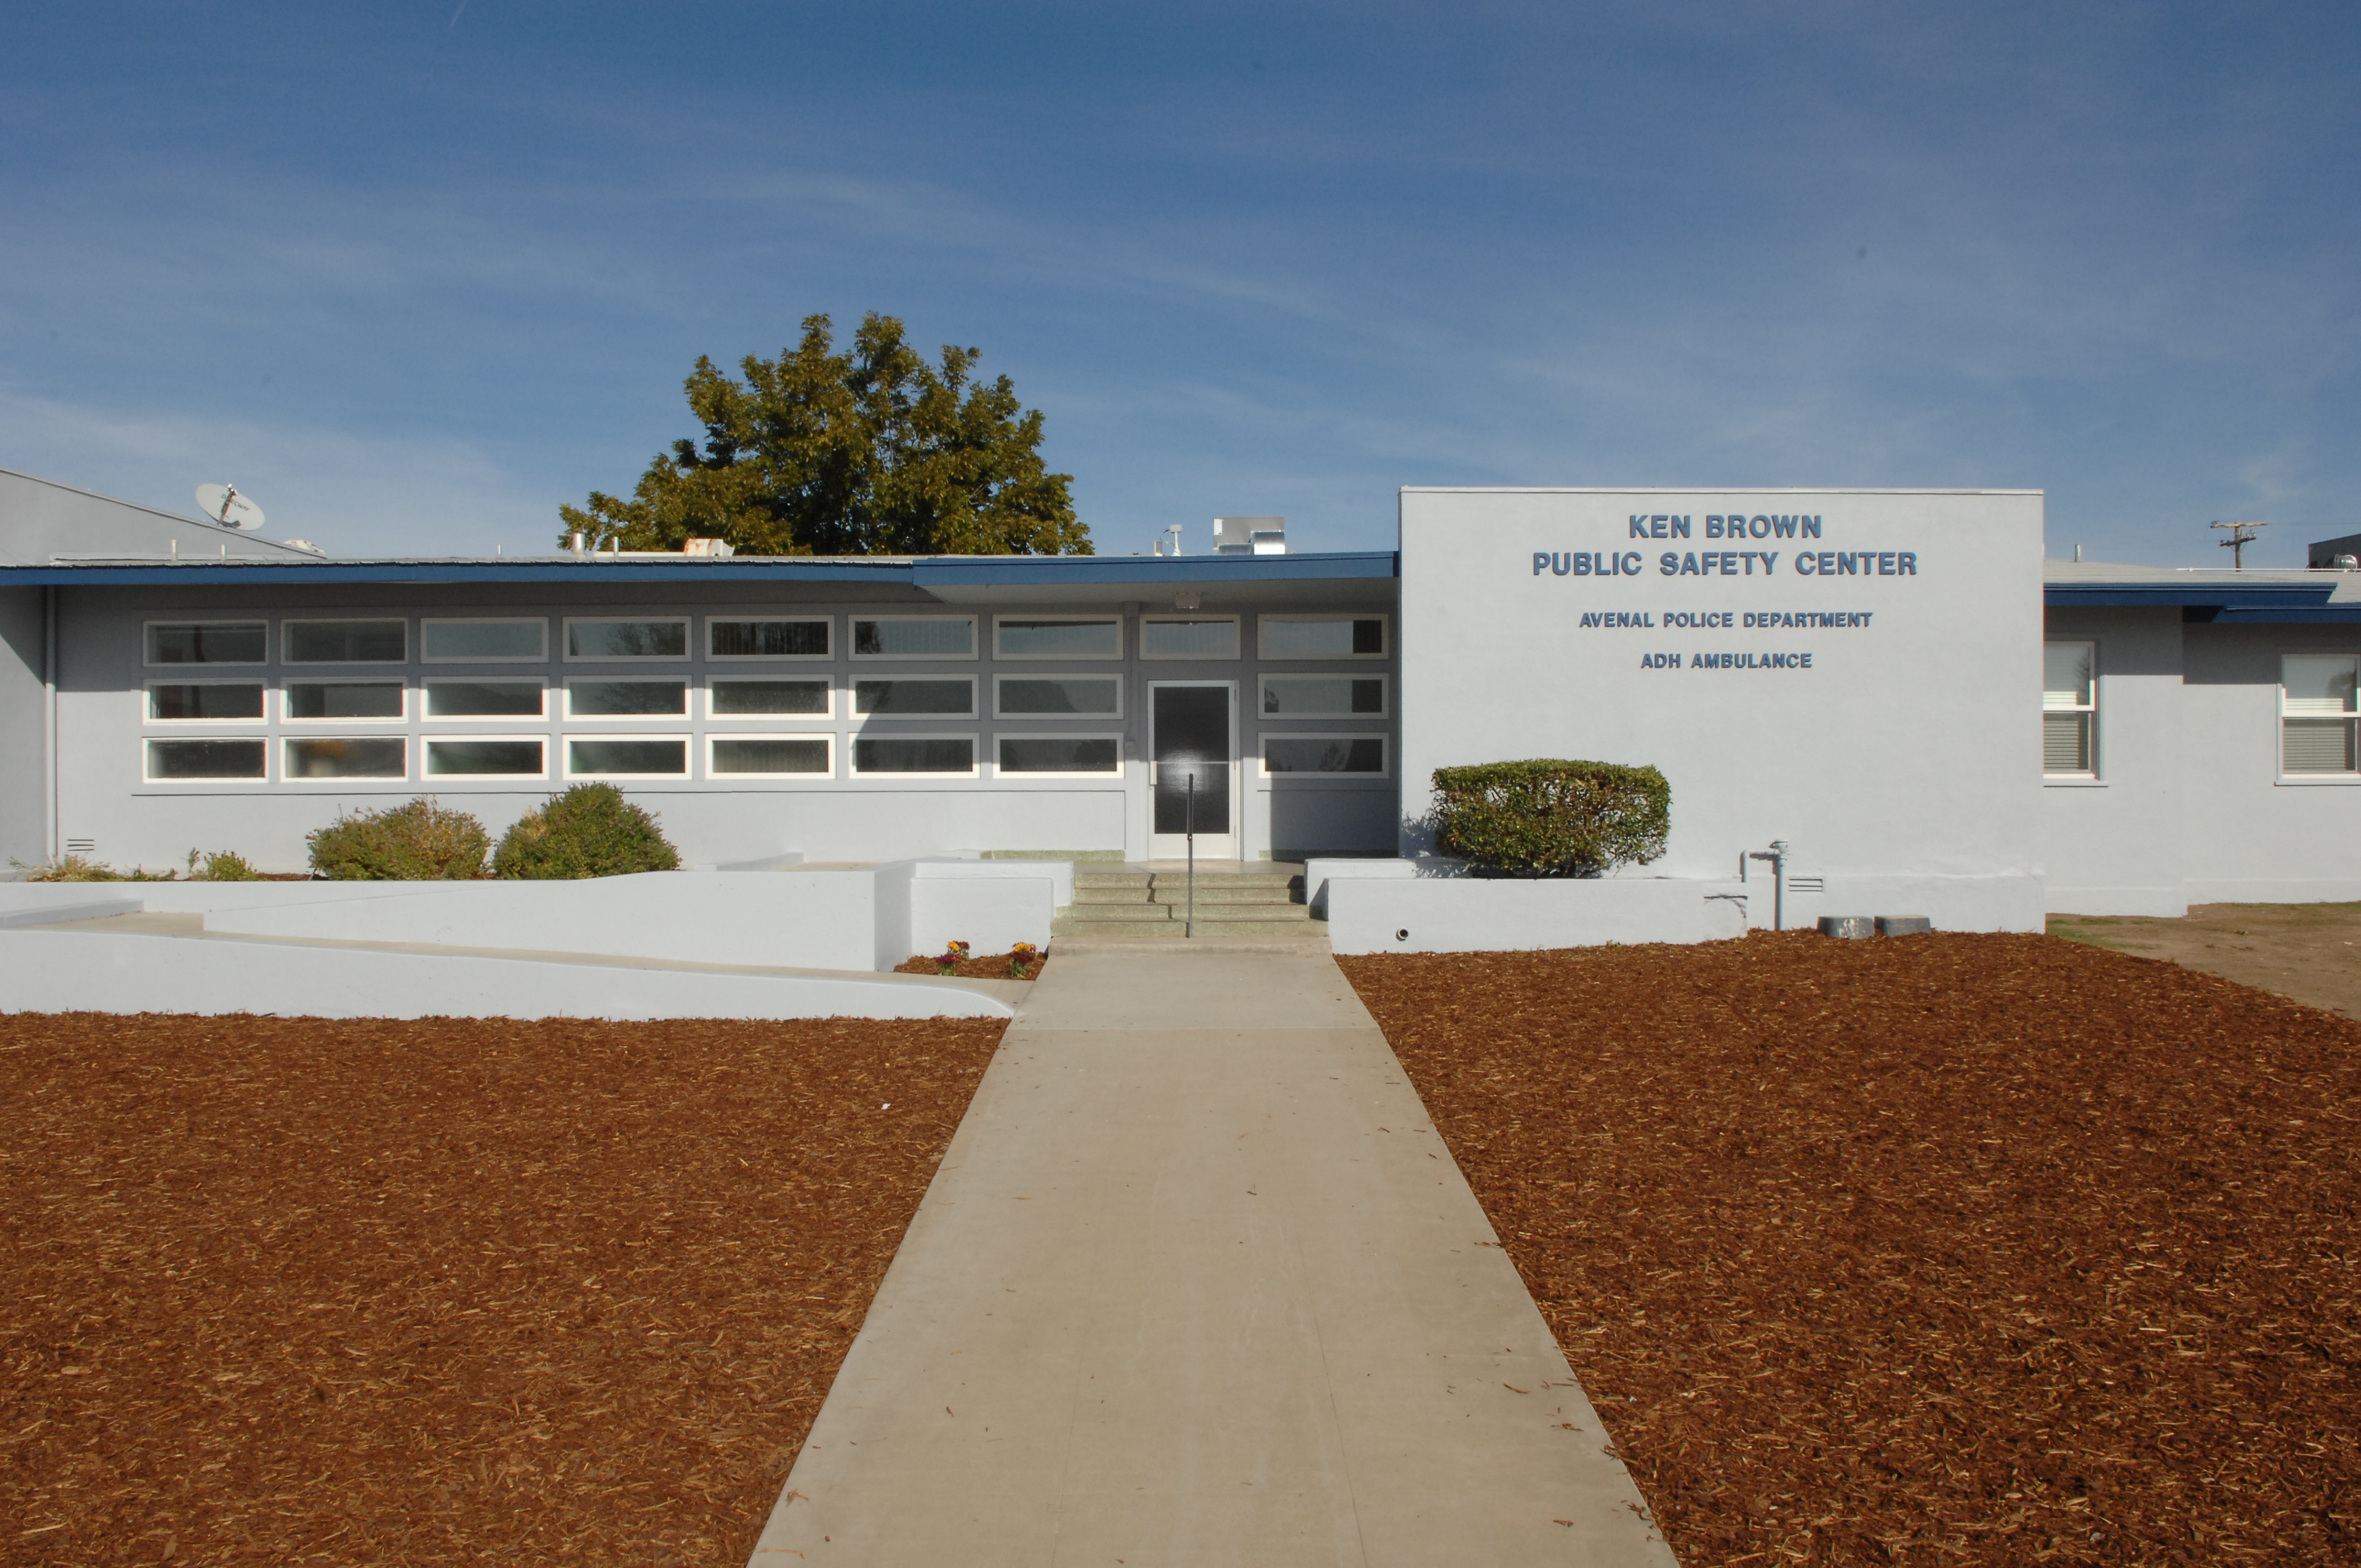 Ken Brown Public Safety Center